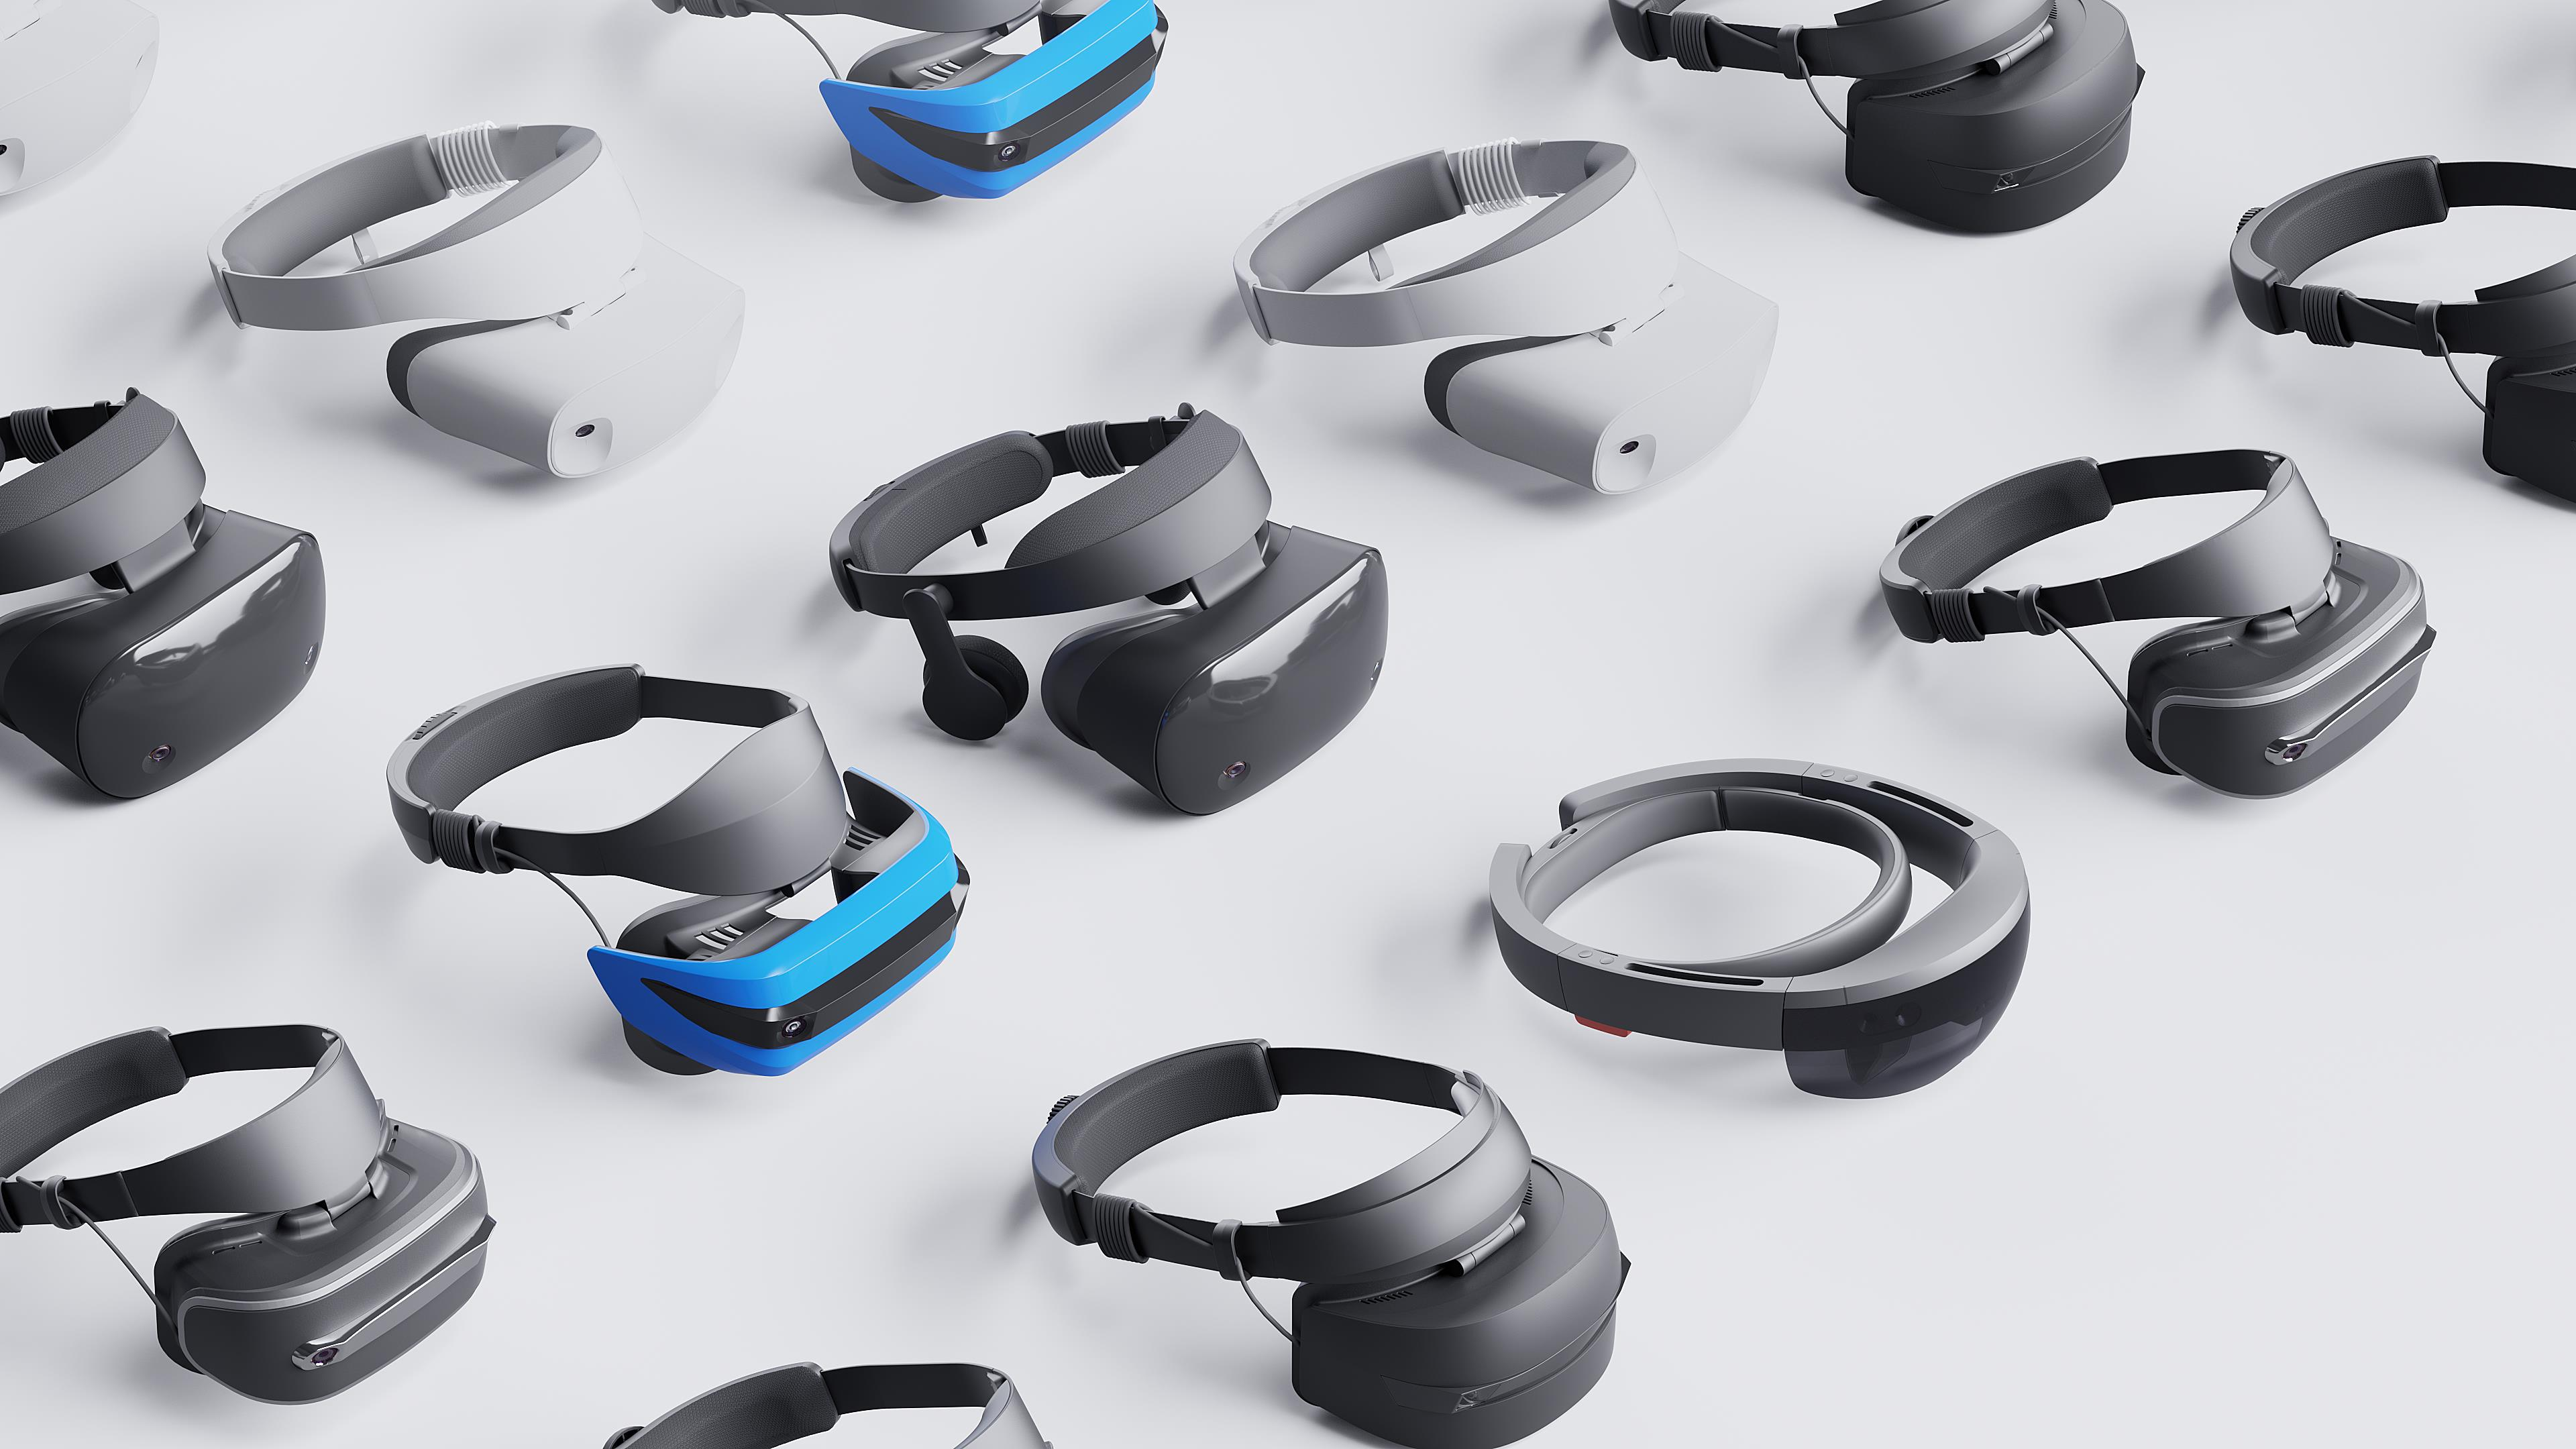 An array of Windows MIxed Reality headsets.